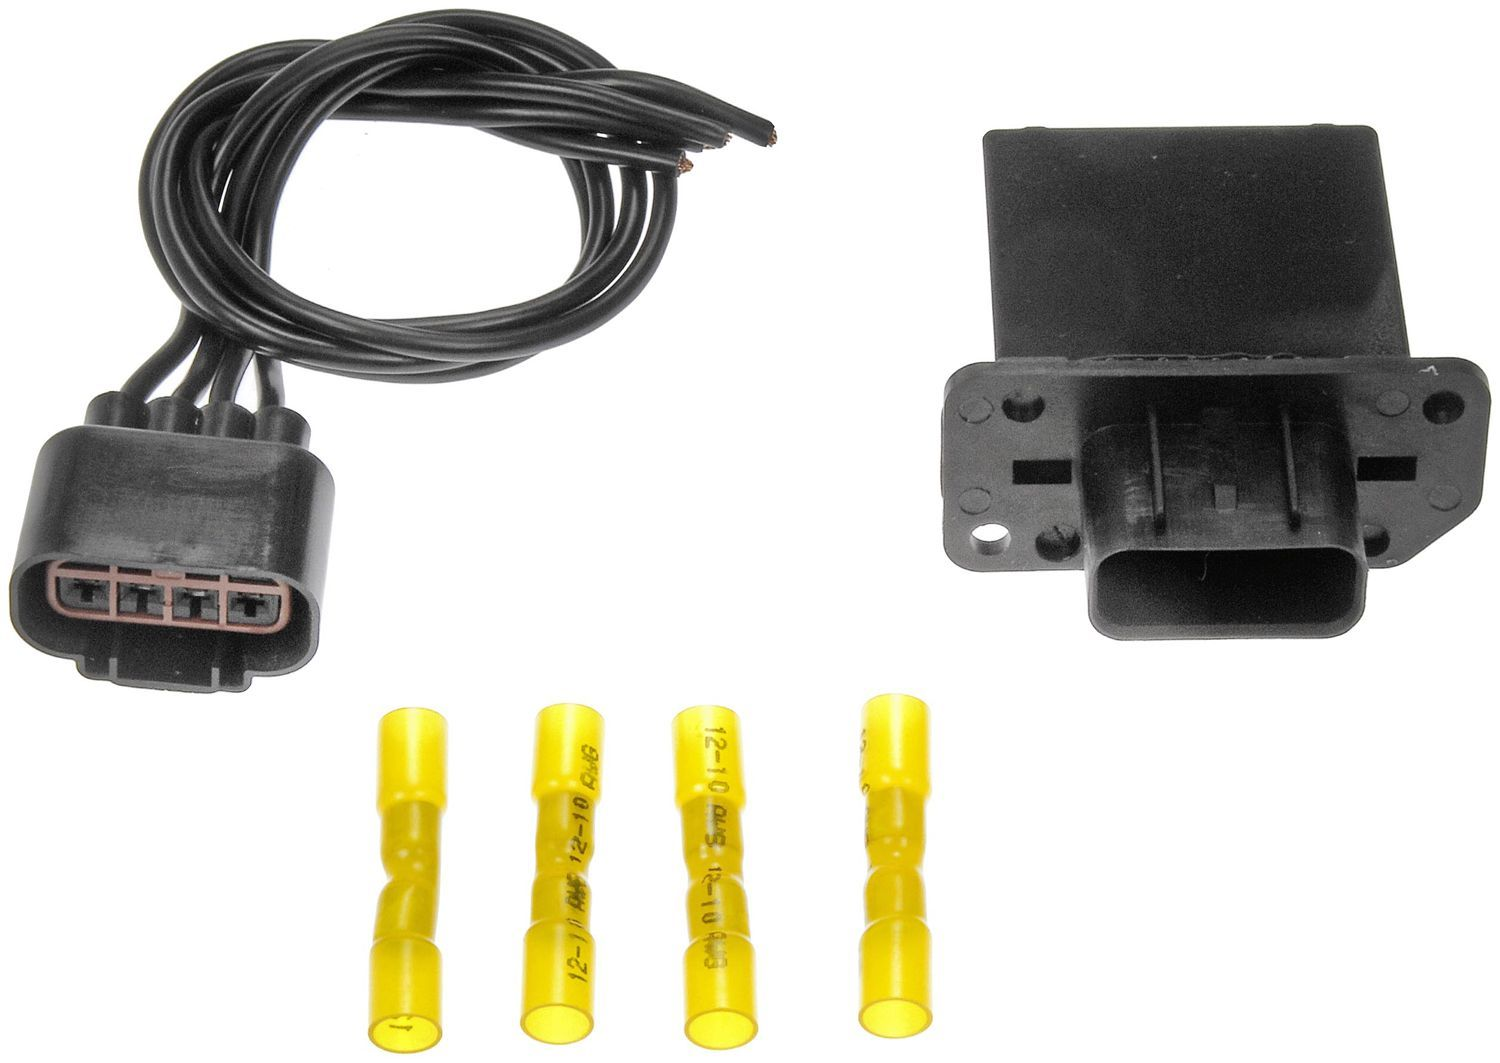 Ford Escape Hvac Blower Motor Resistor Kit Replacement Dorman Go Wiring Harness Connectors 2008 N A 973 518 W Manual Control Air Conditioning